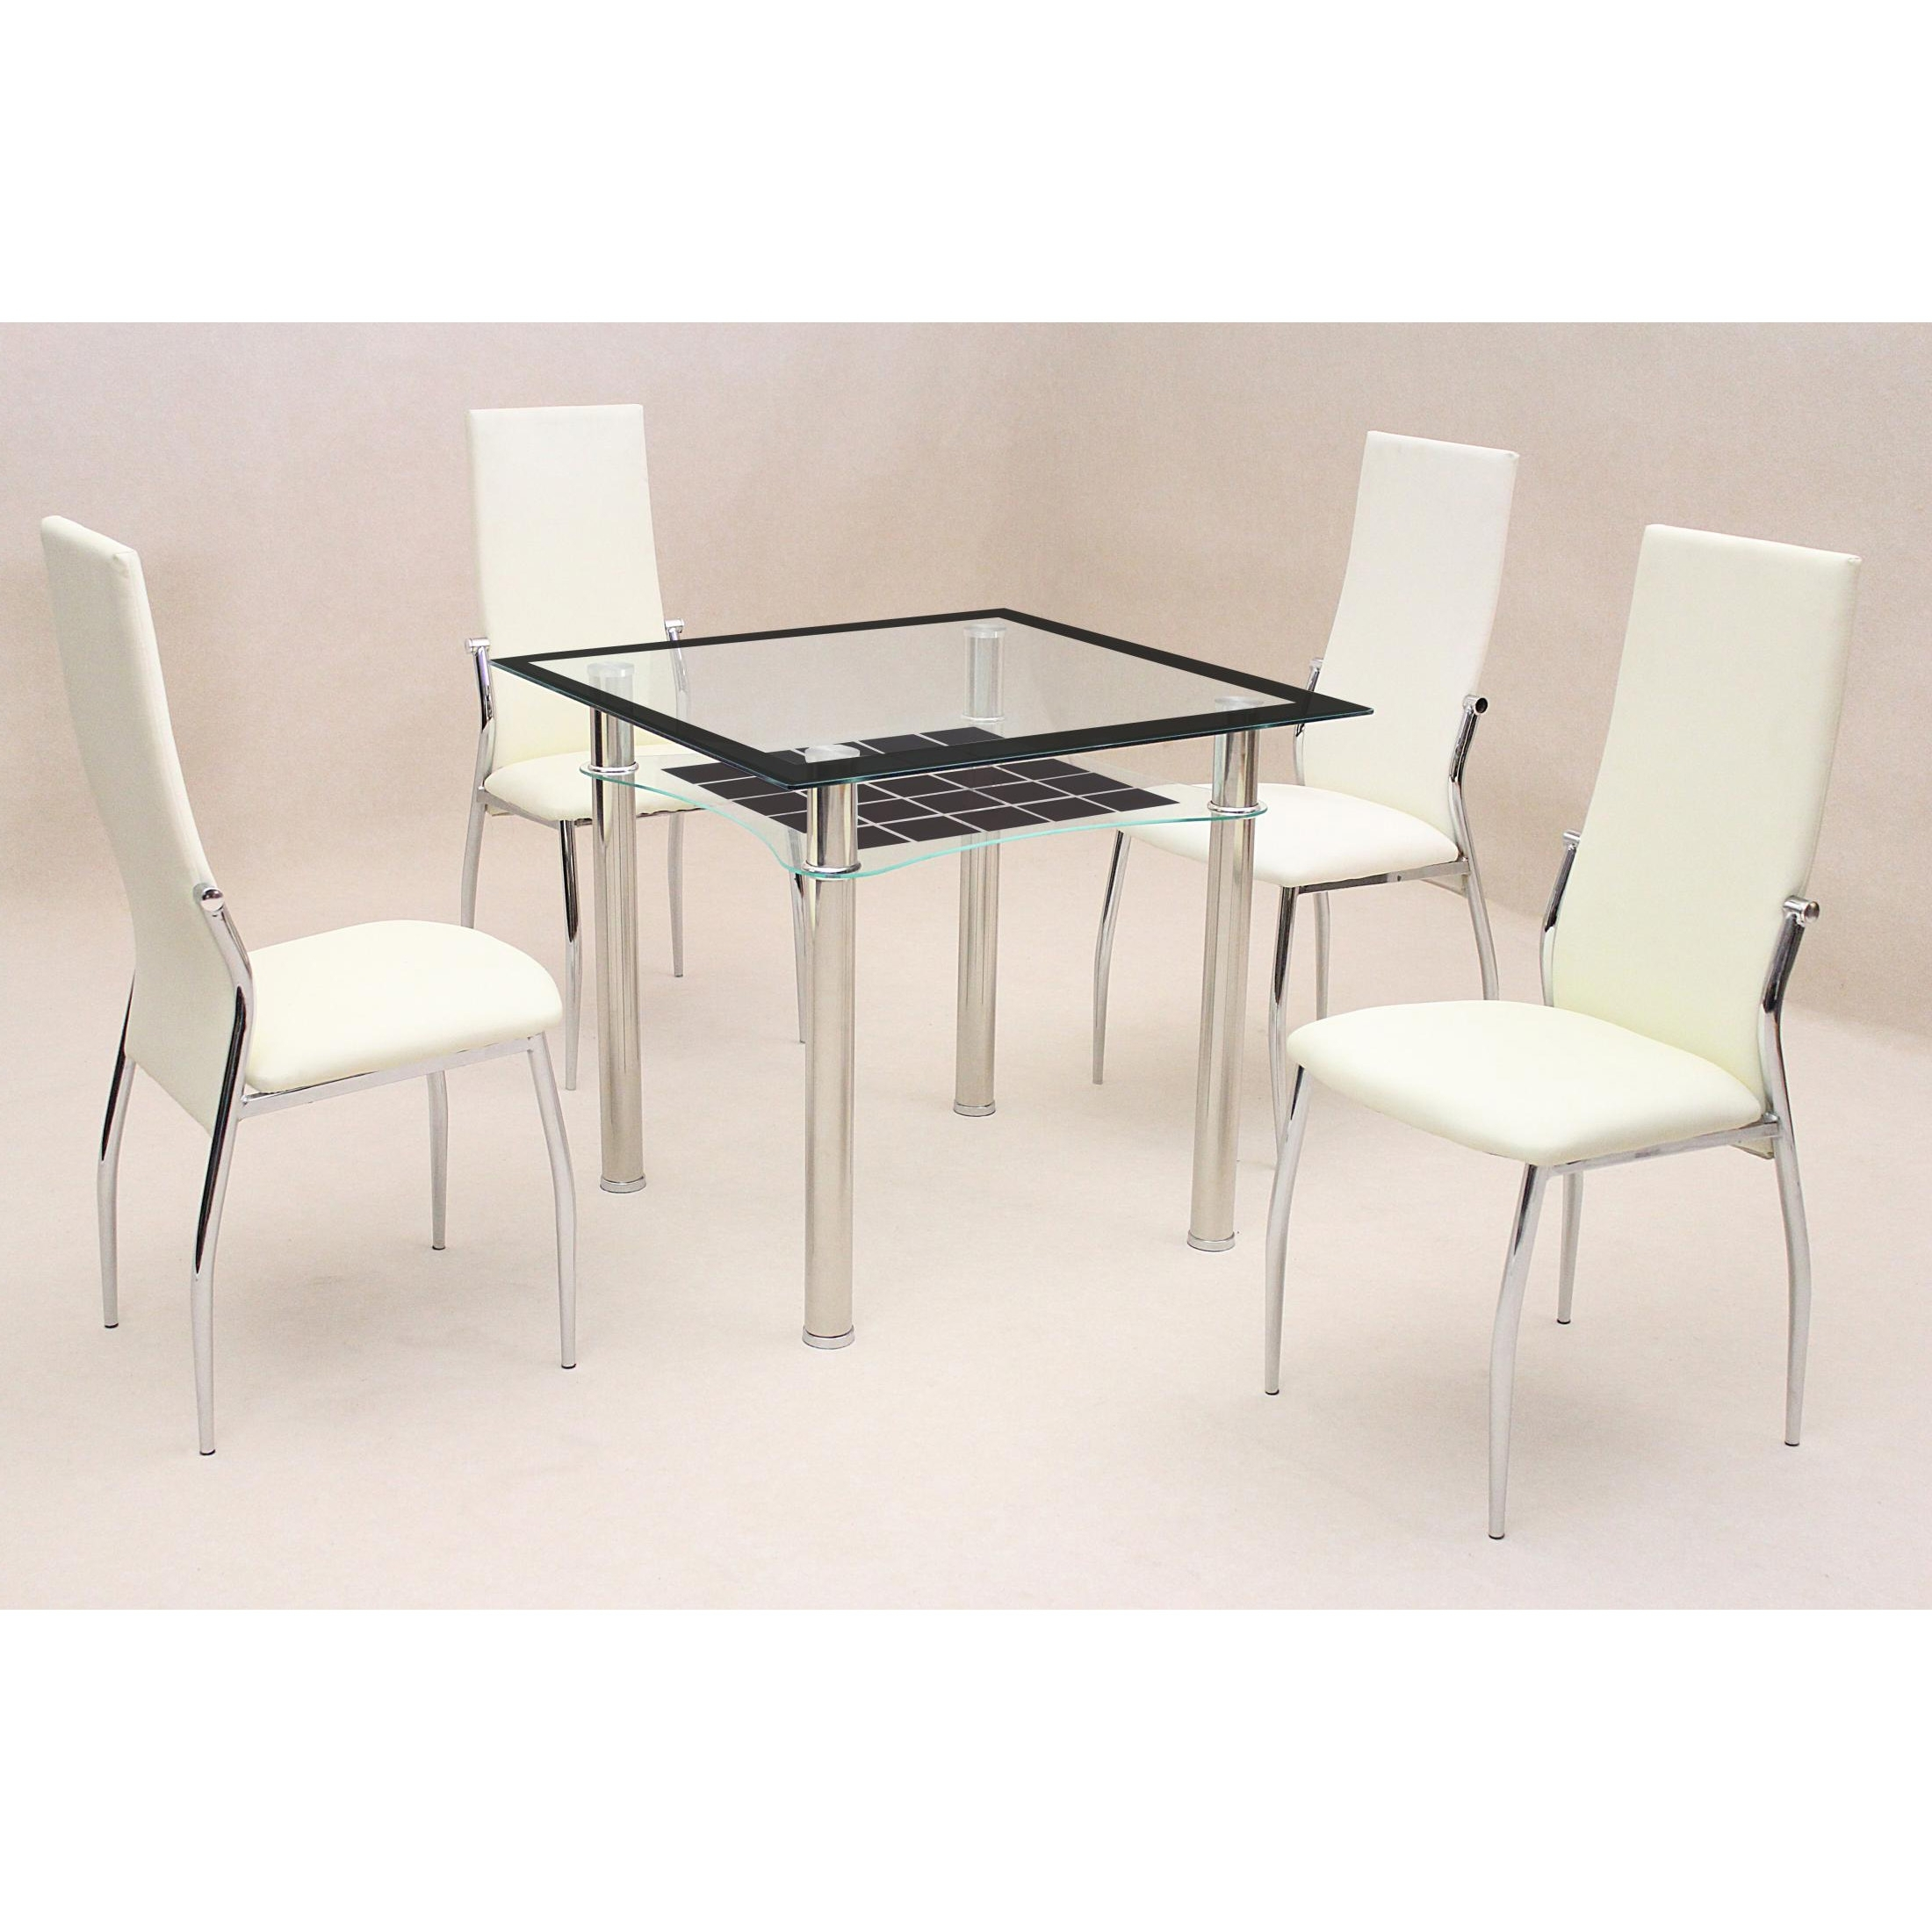 Lazio Dining Tables In Newest Jazo Black Dining Table Chrome 4 Lazio Chairs (View 8 of 25)